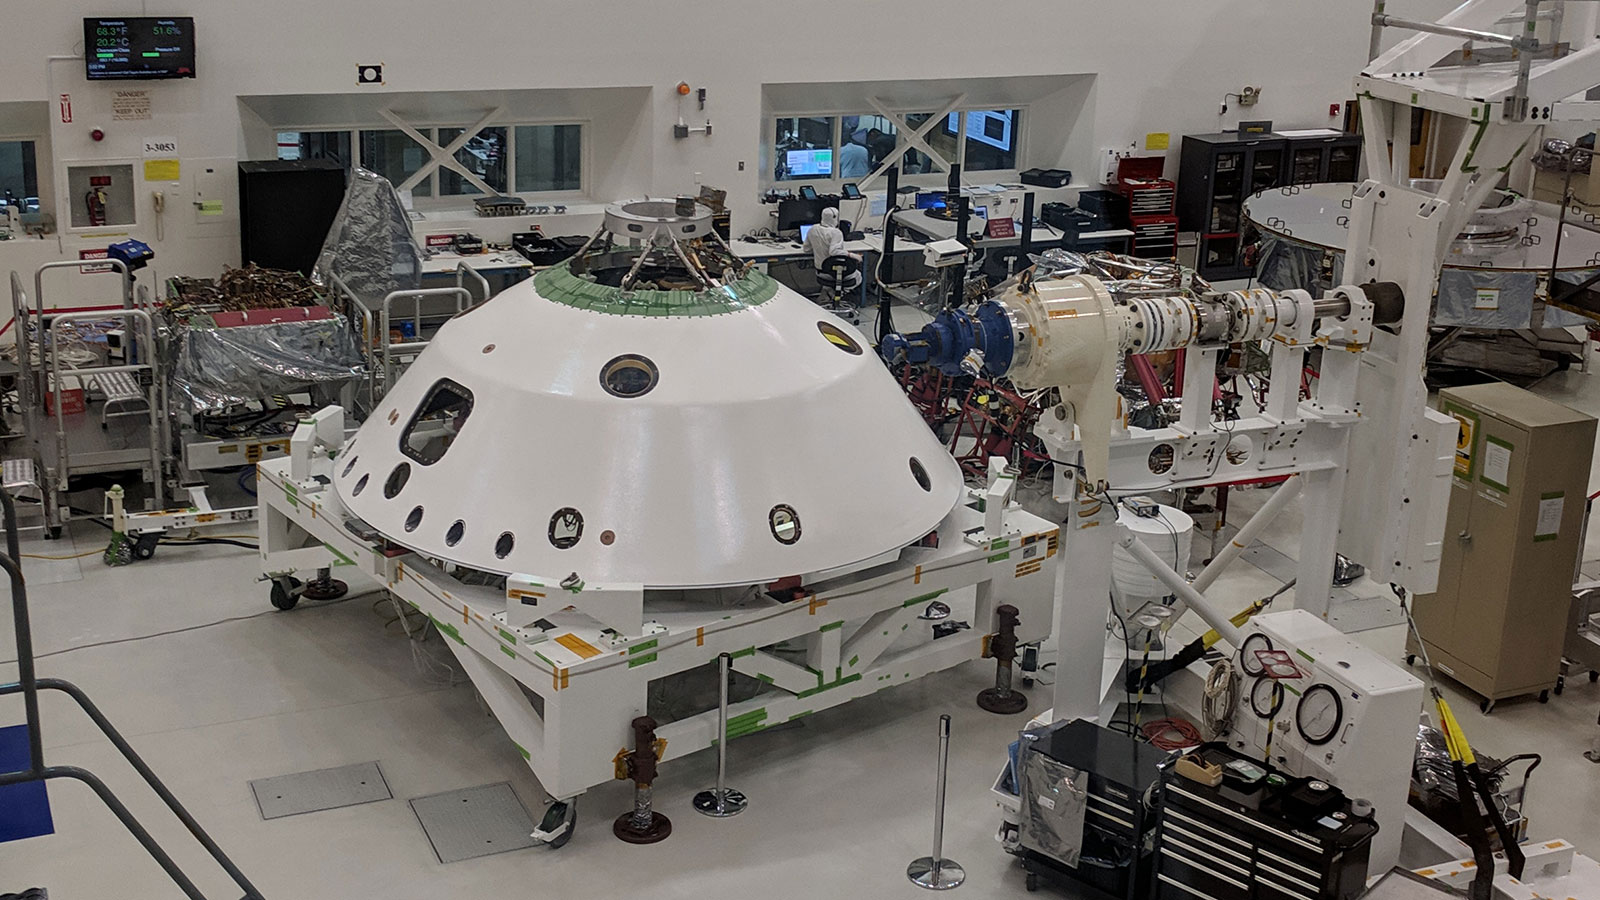 The backshell that will be used to protect the Mars 2020 rover during its entry into the Martian atmosphere sits in the cleanroom in High Bay 1 at NASA's Jet Propulsion Laboratory in Pasadena, California. Photo Credit: NASA